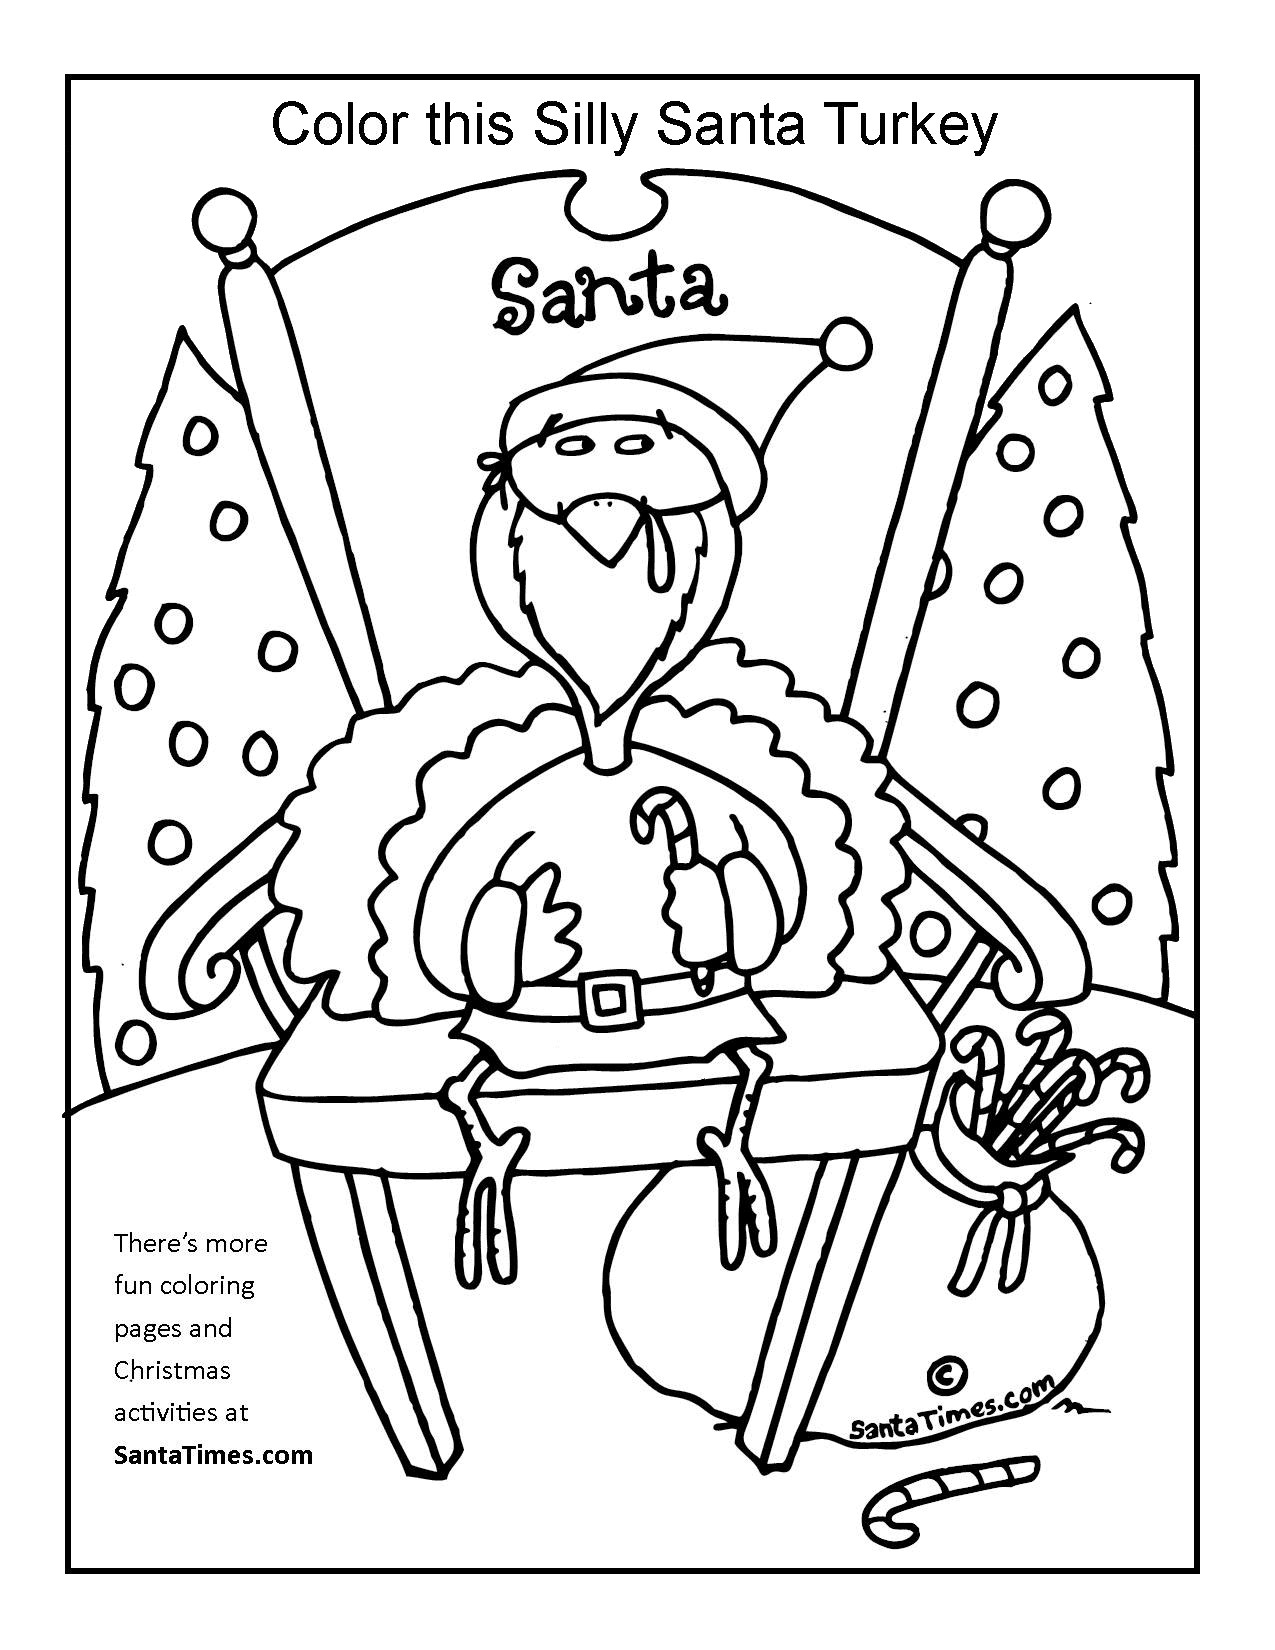 Silly Turkey Coloring Page